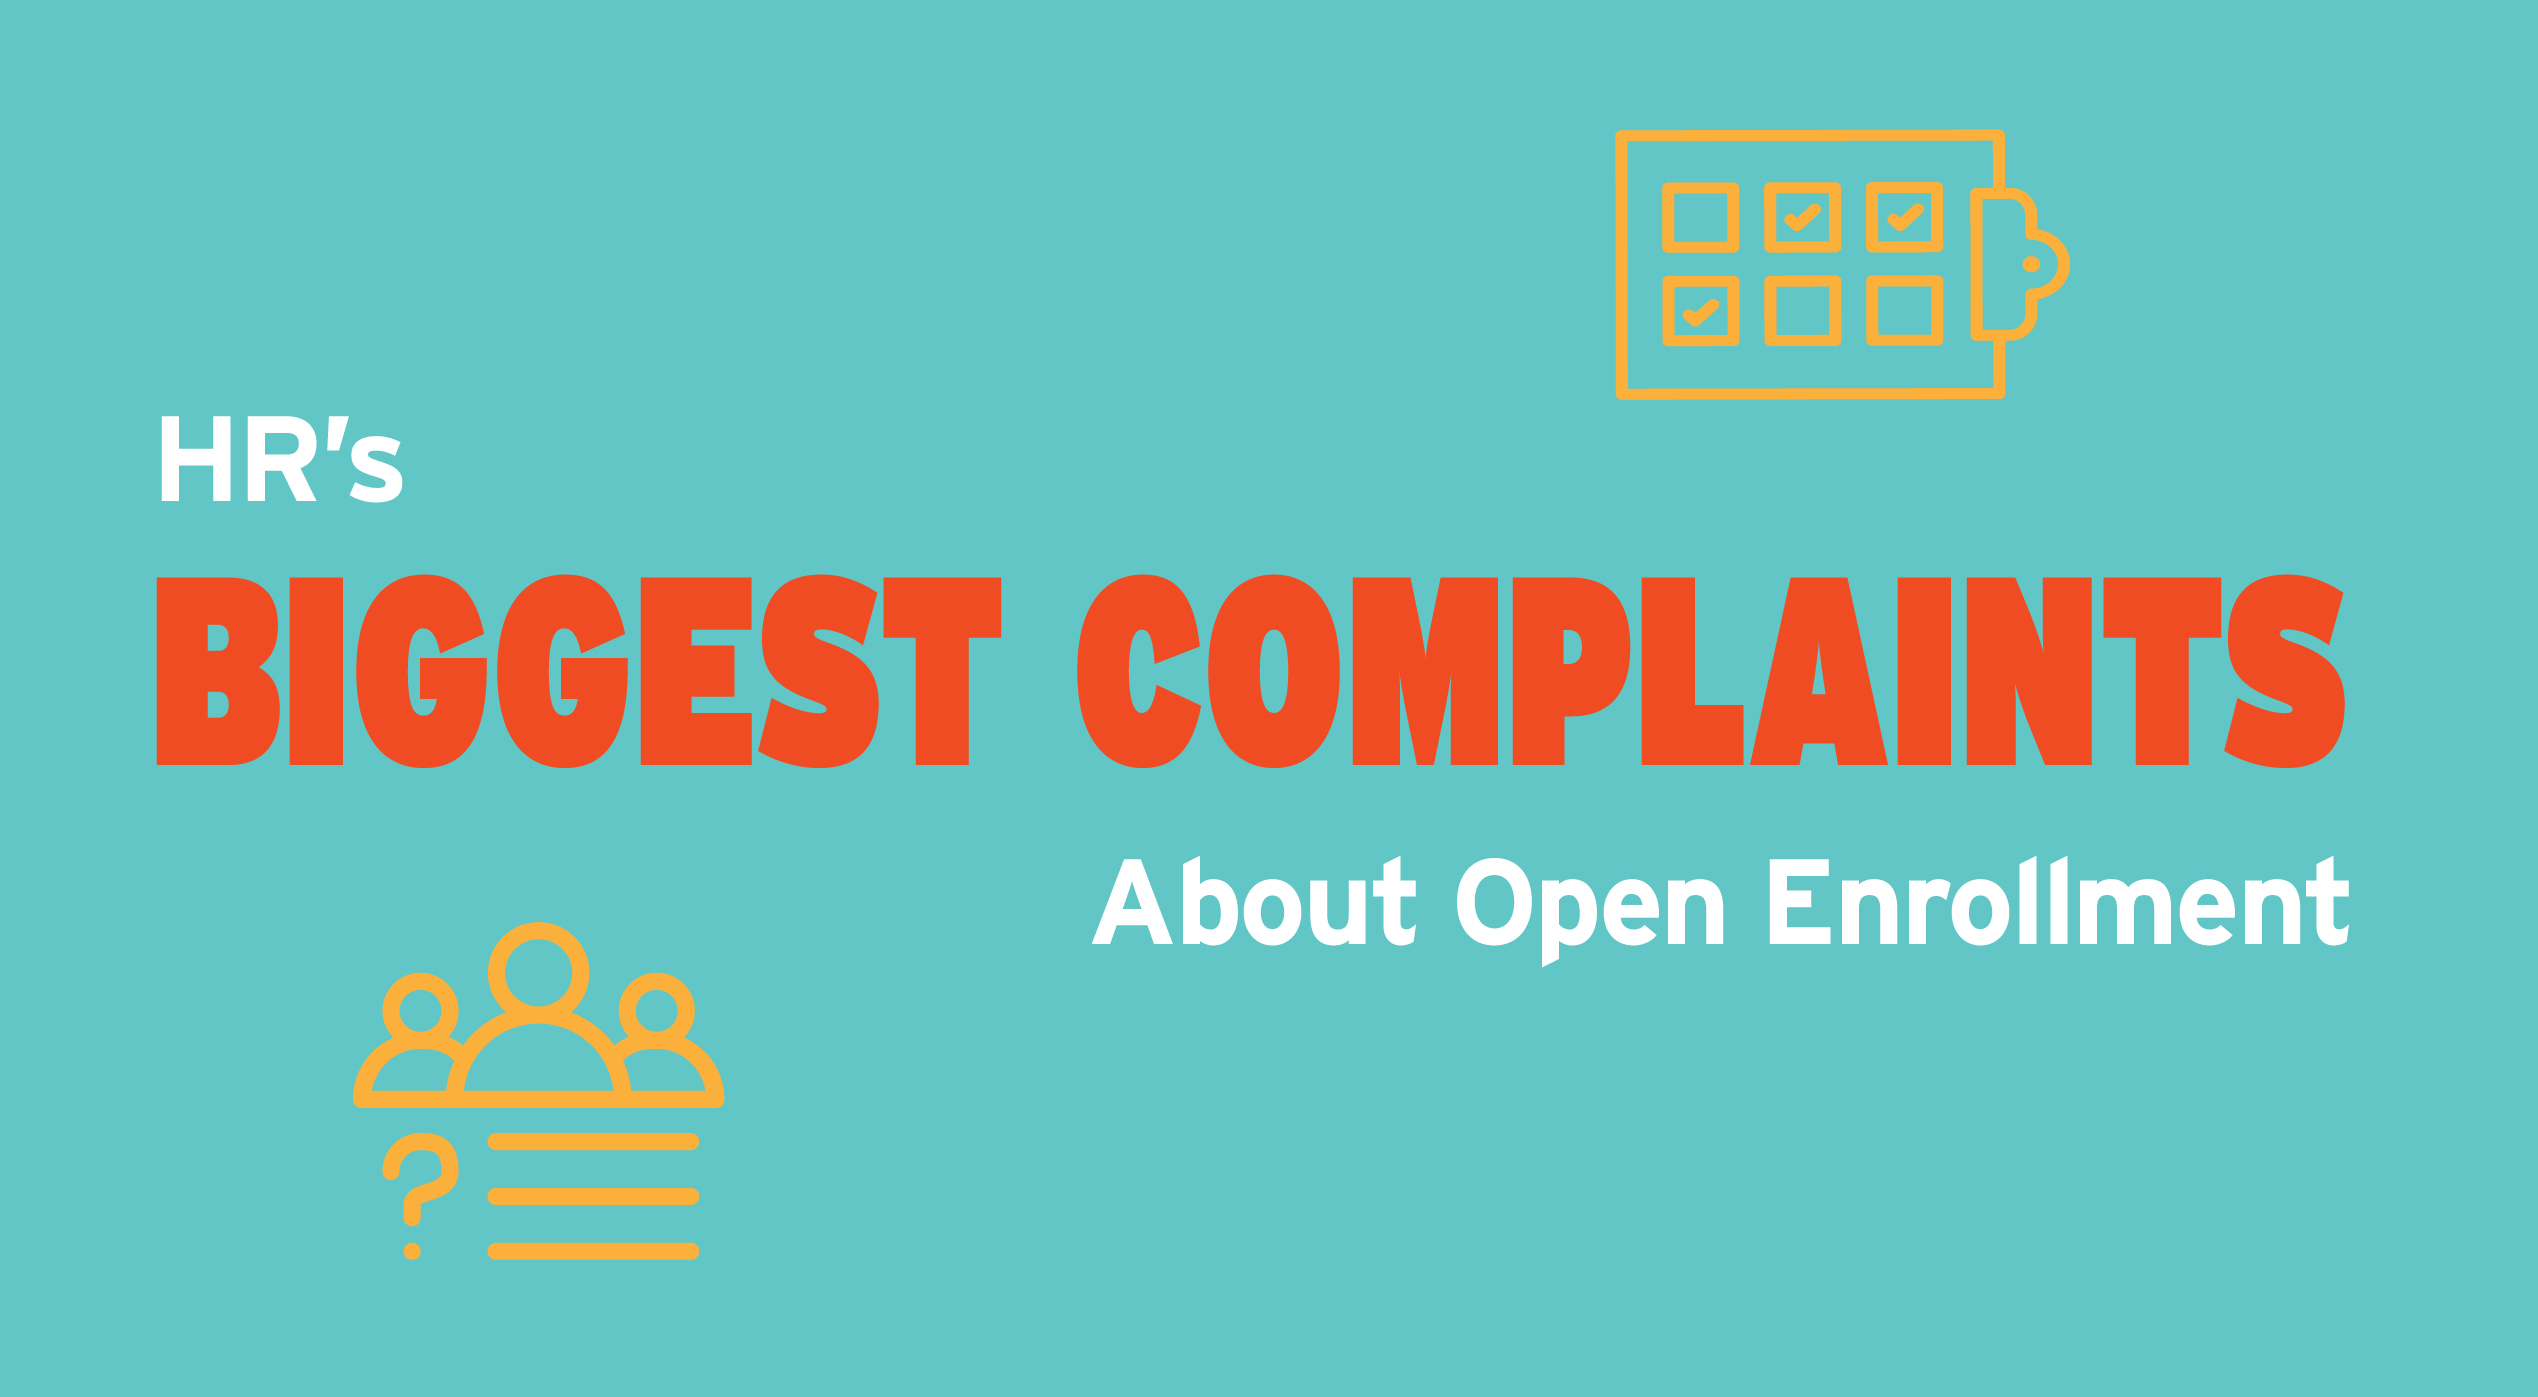 We Surveyed HR Pros to See Their Biggest Complaints About Open Enrollment